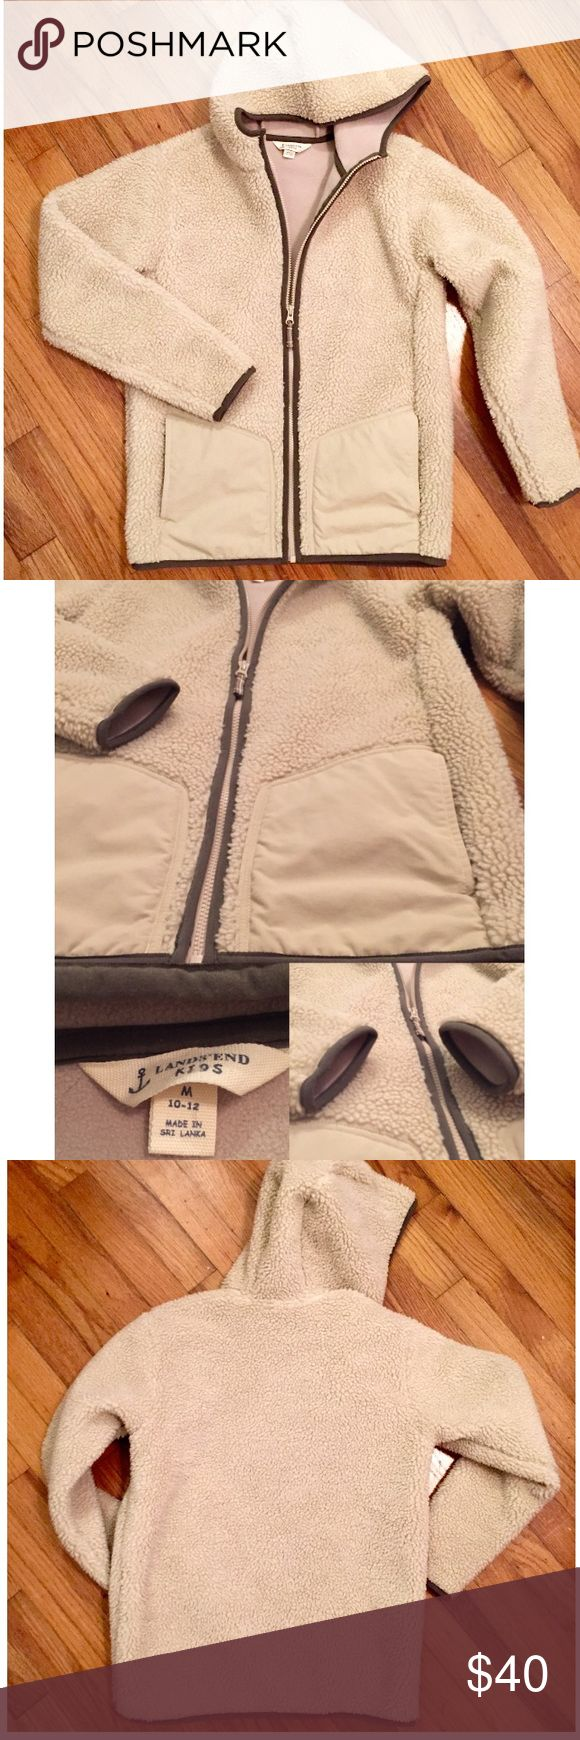 "🌟SALE🌟LANDS END KIDS Sherpa Fleece Zip Up Jacket **SALE PRICE FIRM UNLESS BUNDLED** This is a brand new (w/out tags) Sherpa winter jacket from Lands End Kids. Zips up, has hood, and pockets. Sold on their site as a boy's jacket but the colors are gender neutral; a cream/light tan color and brown trim. Tag size: 10 to 12. This is a good looking jacket! It's a great everyday/""wear with everything"" for your kiddo.😊 Thanks for looking!  ***BUNDLE 2 OR MORE ITEMS IN MY CLOSET AND SAVE AN…"